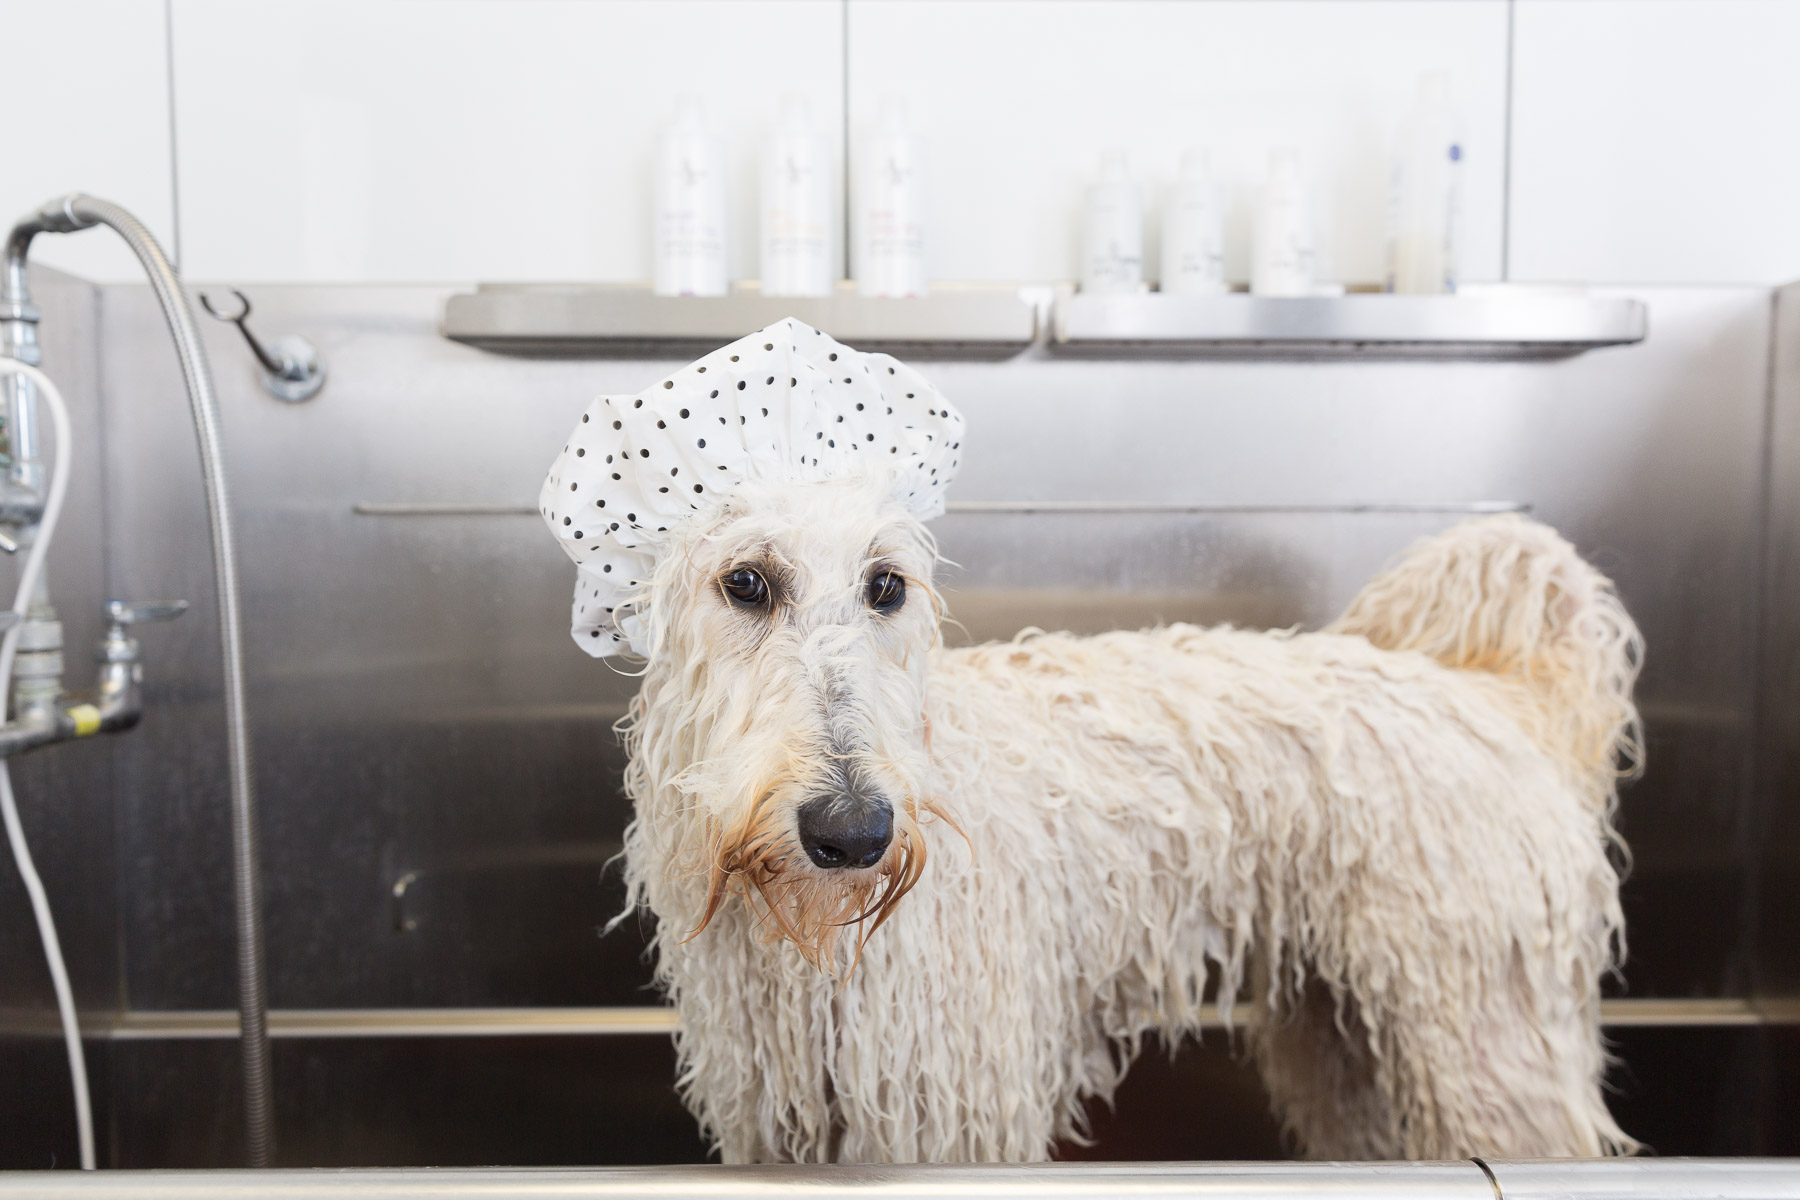 White dog being bathed in a tub ready for a blue berry facial treatment.